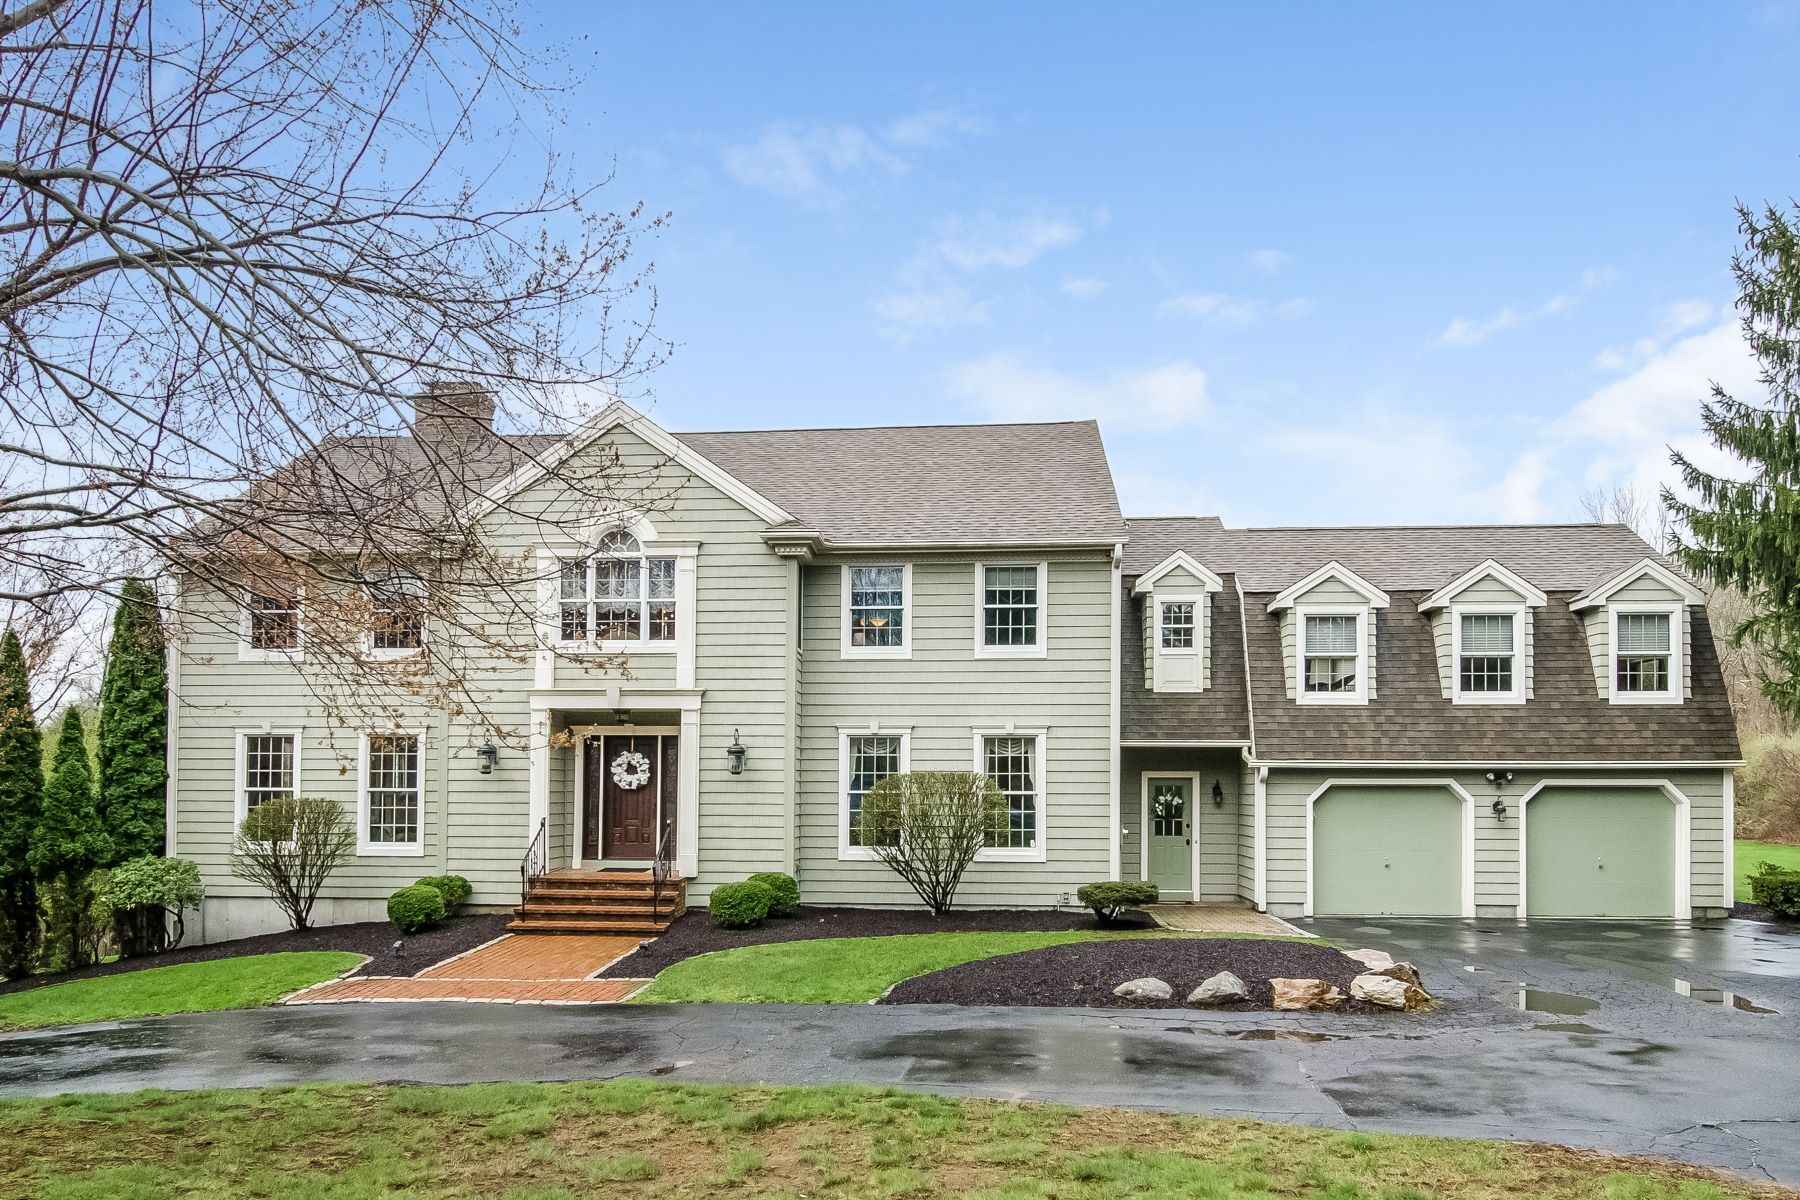 Single Family Home for Sale at Captivating New England Colonial 31 Carmel Hill Road, Woodbury, Connecticut, 06798 United States